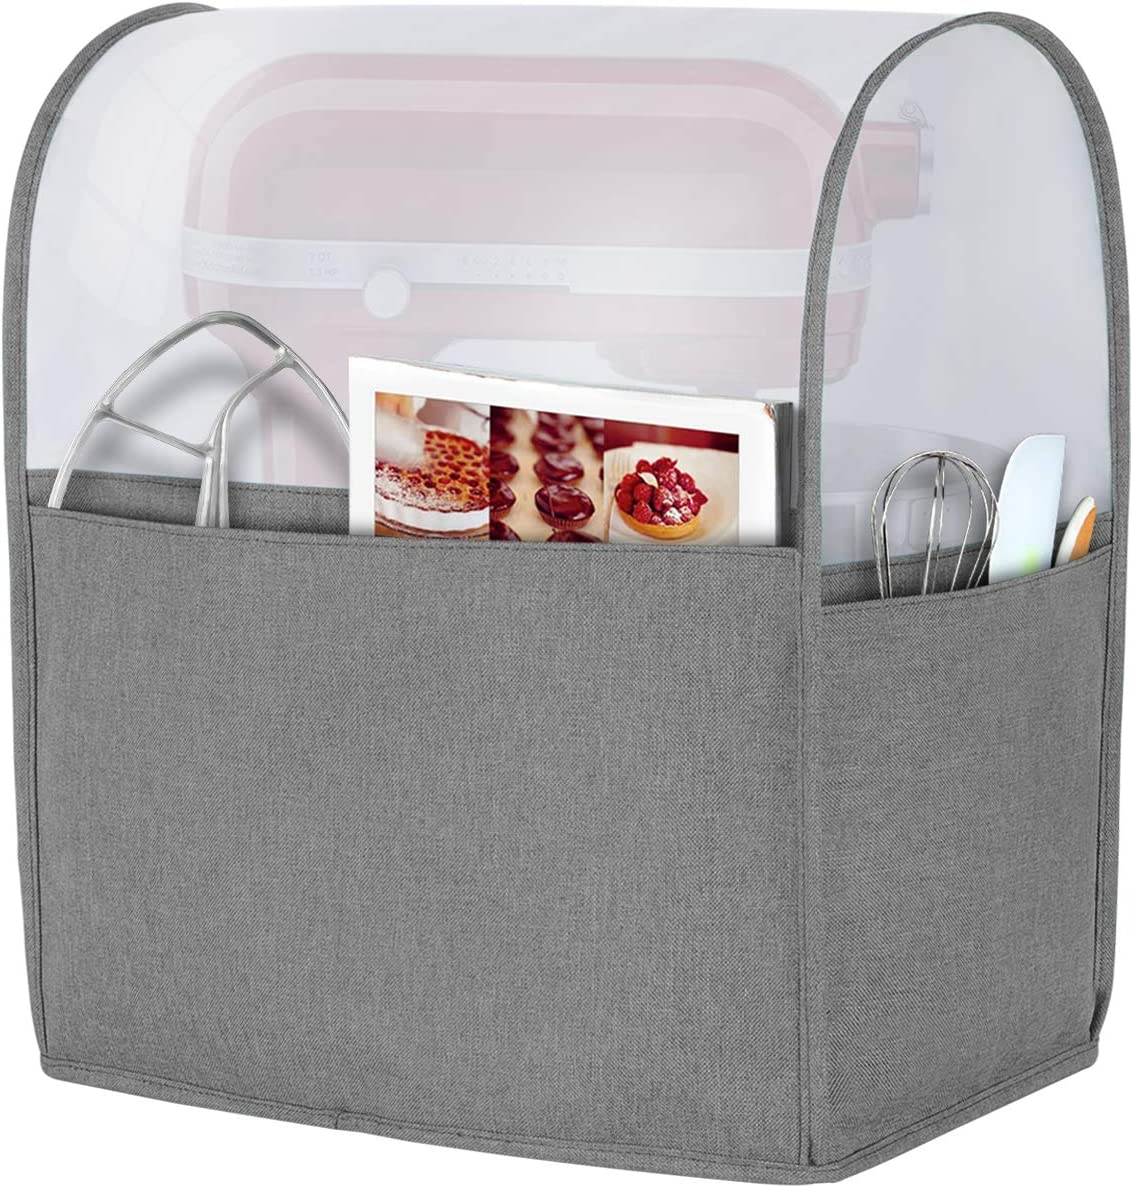 Luxja Dust Cover for 6-8 Quart Stand Mixer, Cover (Opaque Top) with Pockets for Stand Mixer and Extra Accessories (Compatible with All 6-8 Quart KitchenAid Mixers), Gray (Patented Design)